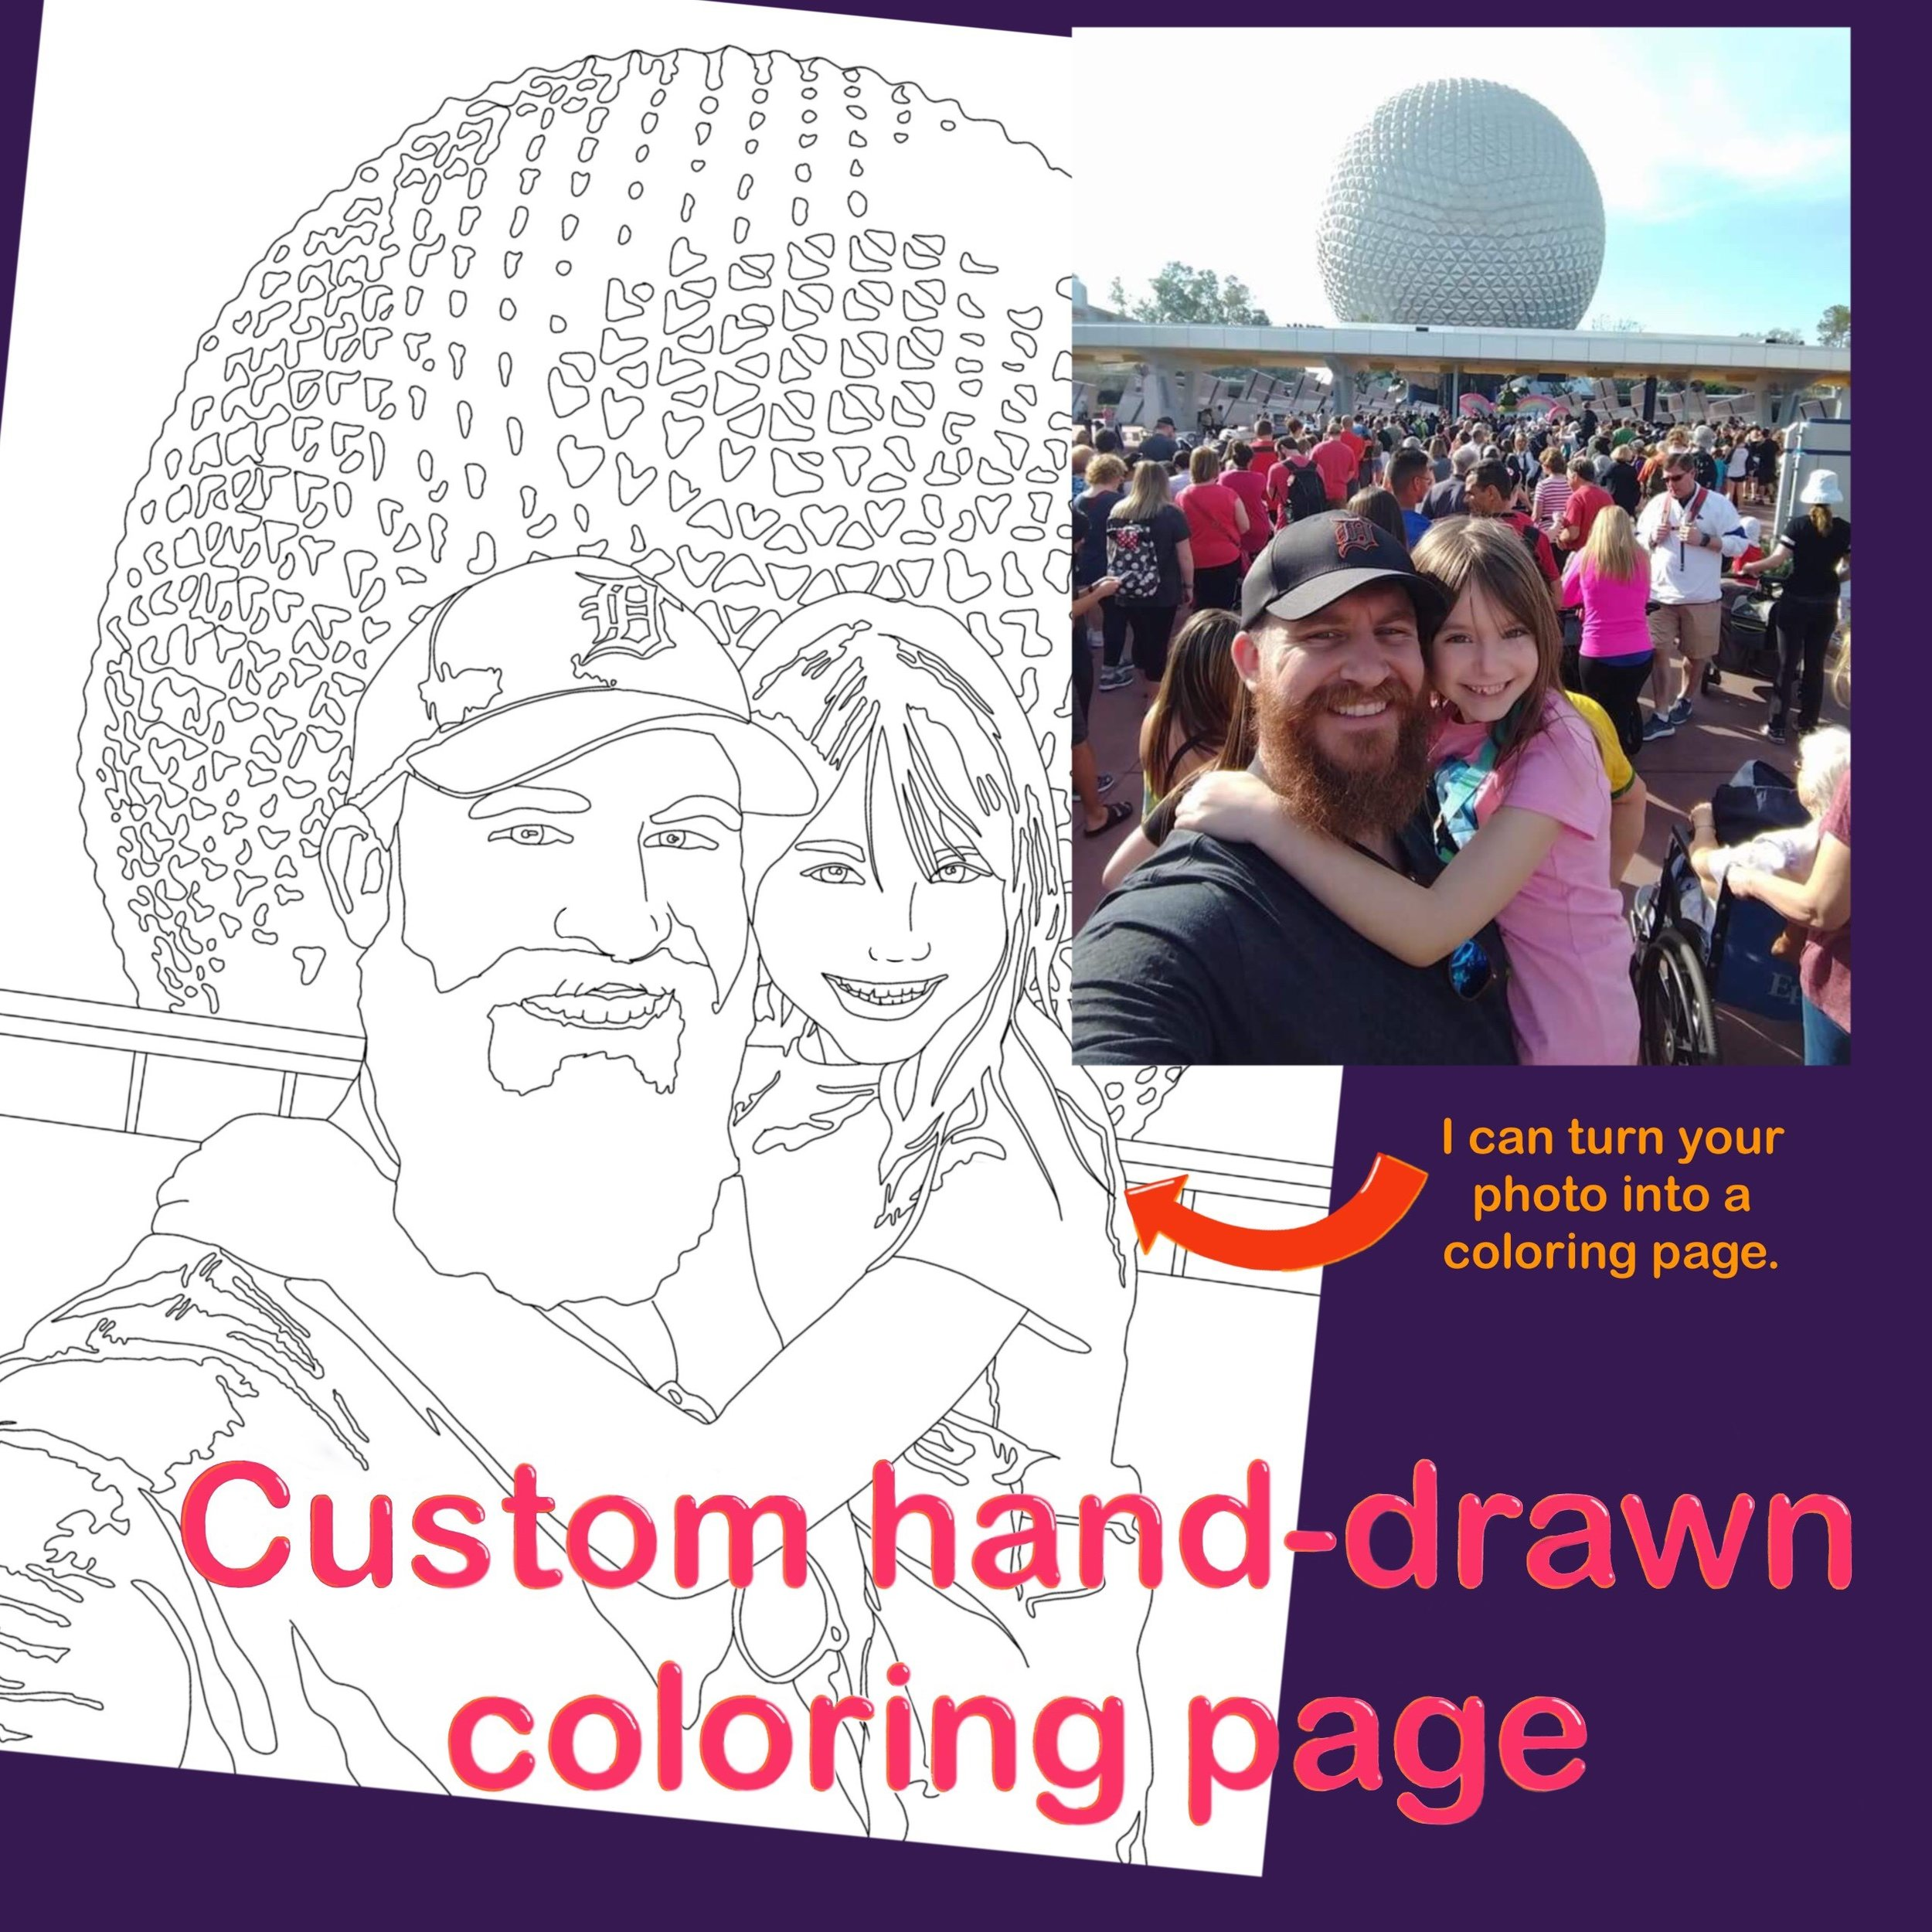 Custom hand-drawn  coloring pages available now!